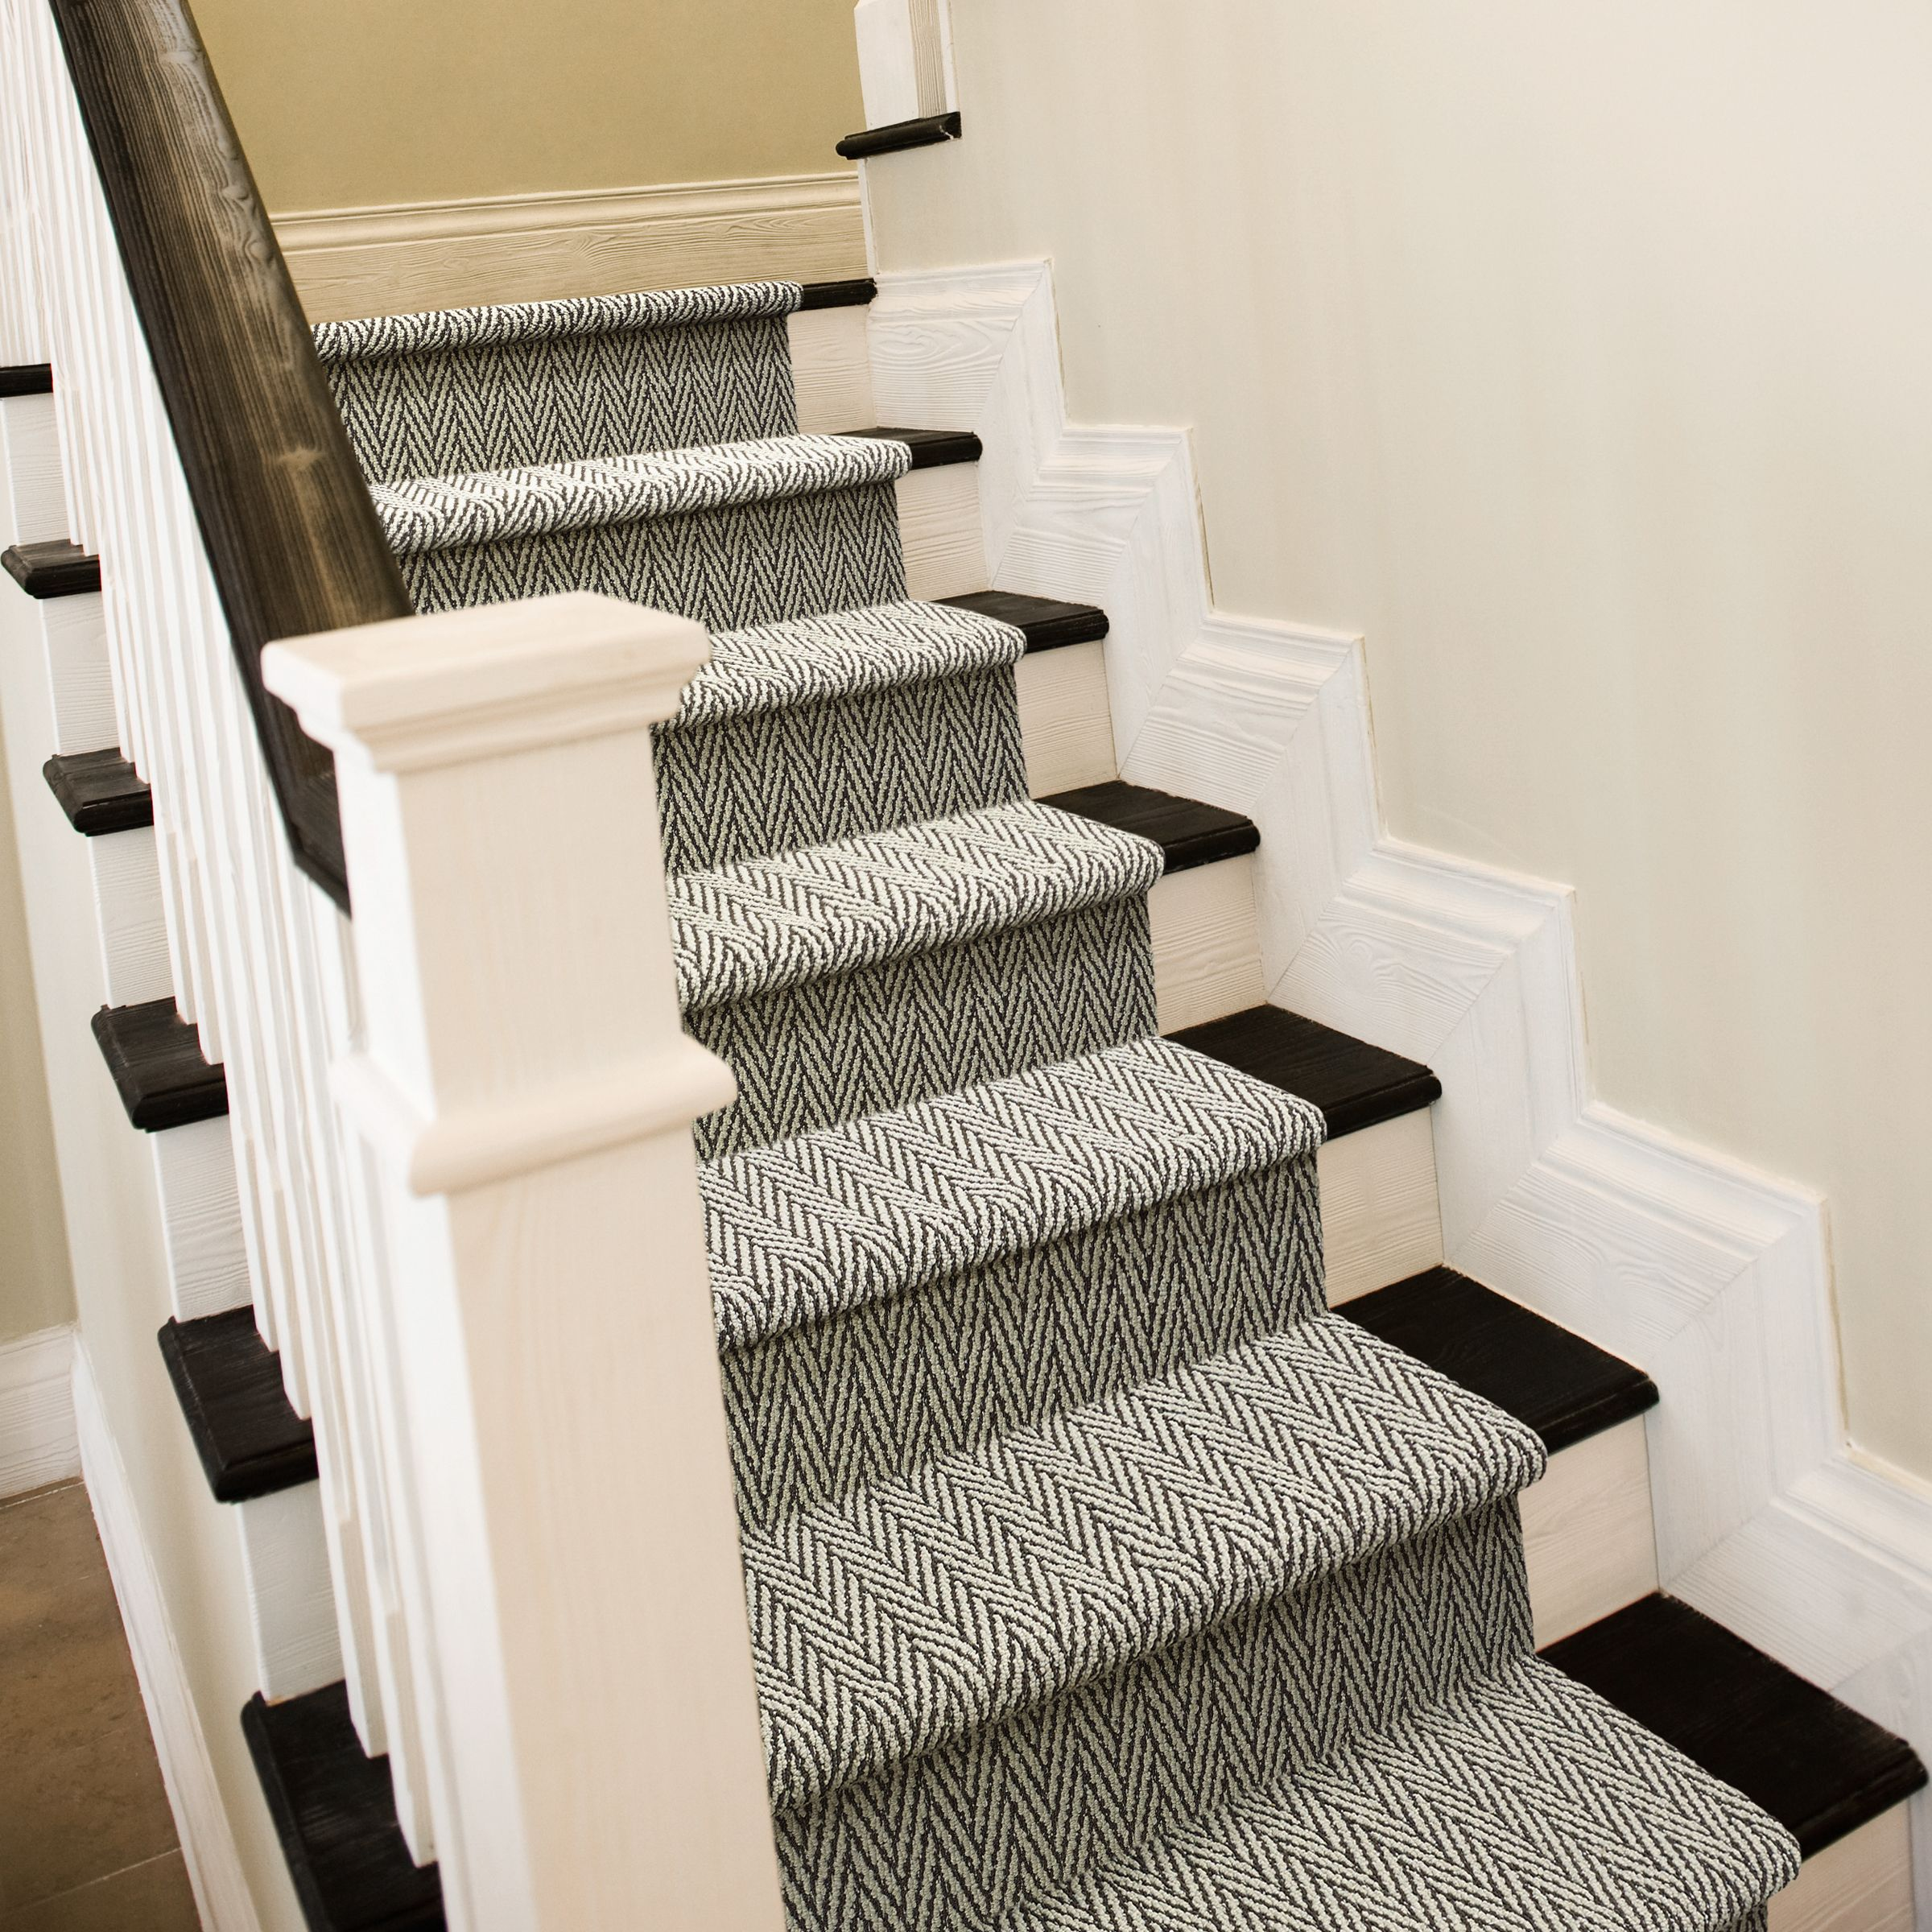 Only Natural Ii Zz010 00518 Carpet Flooring Anderson Tuftex   Carpet On Stairs Only   Concept   Line Carpet Staircase Double   Pinstripe Grey   Grey   Wood